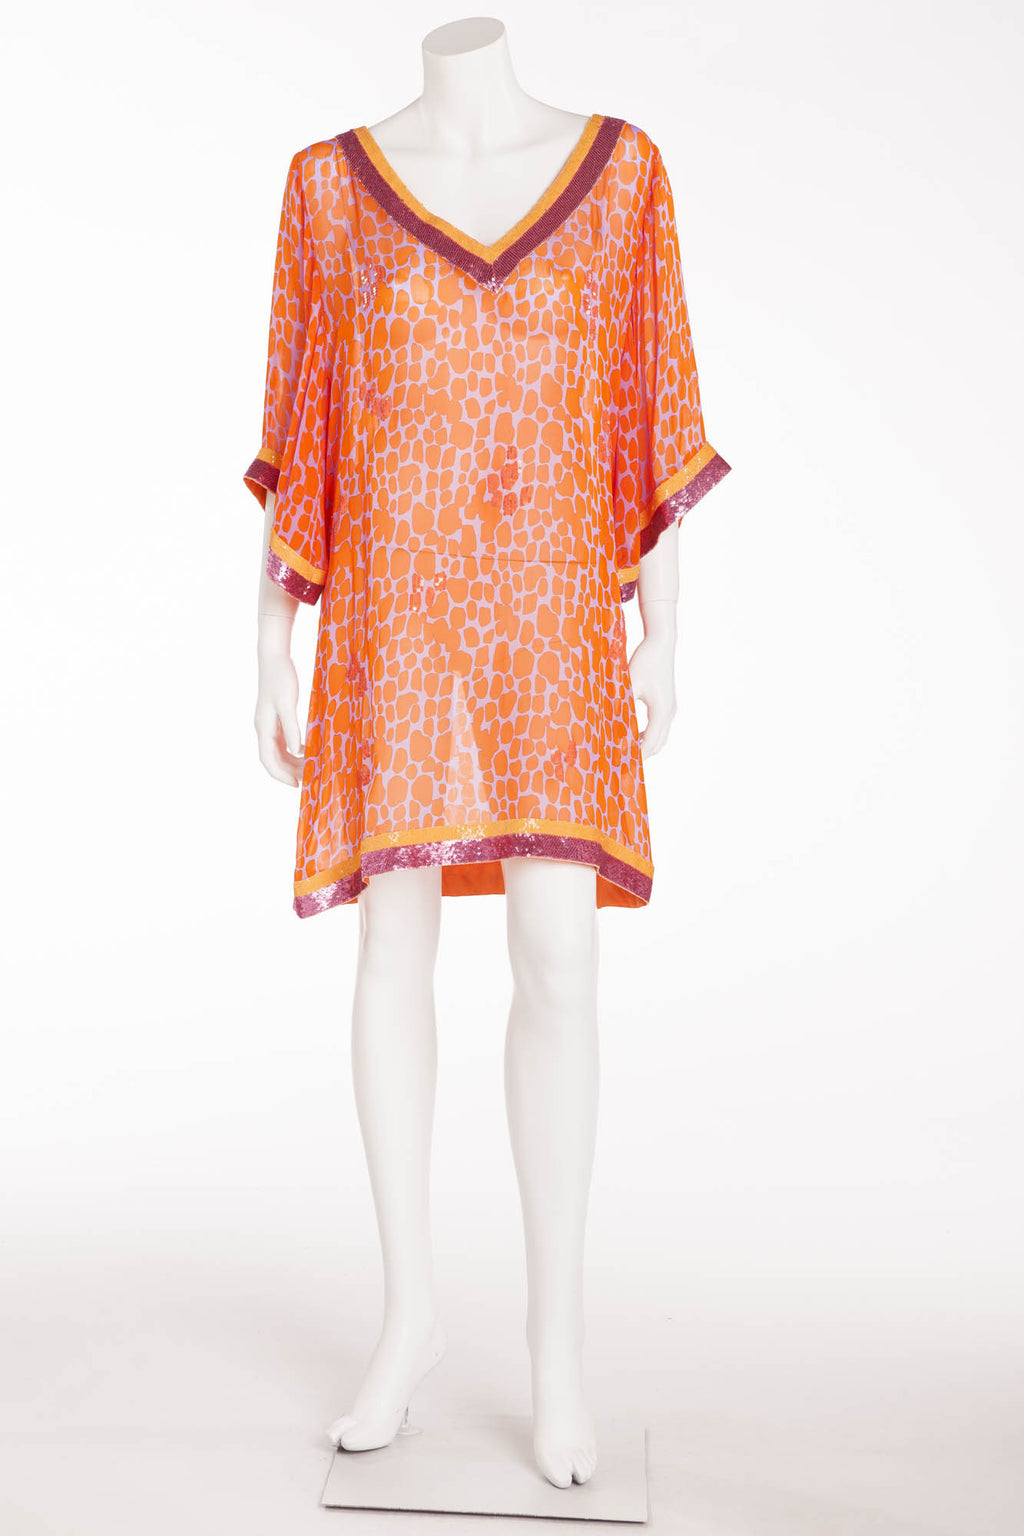 Blumarine - Orange Leopard Chiffon Short Sleeve Dress with Hot Pink Sequin Trim